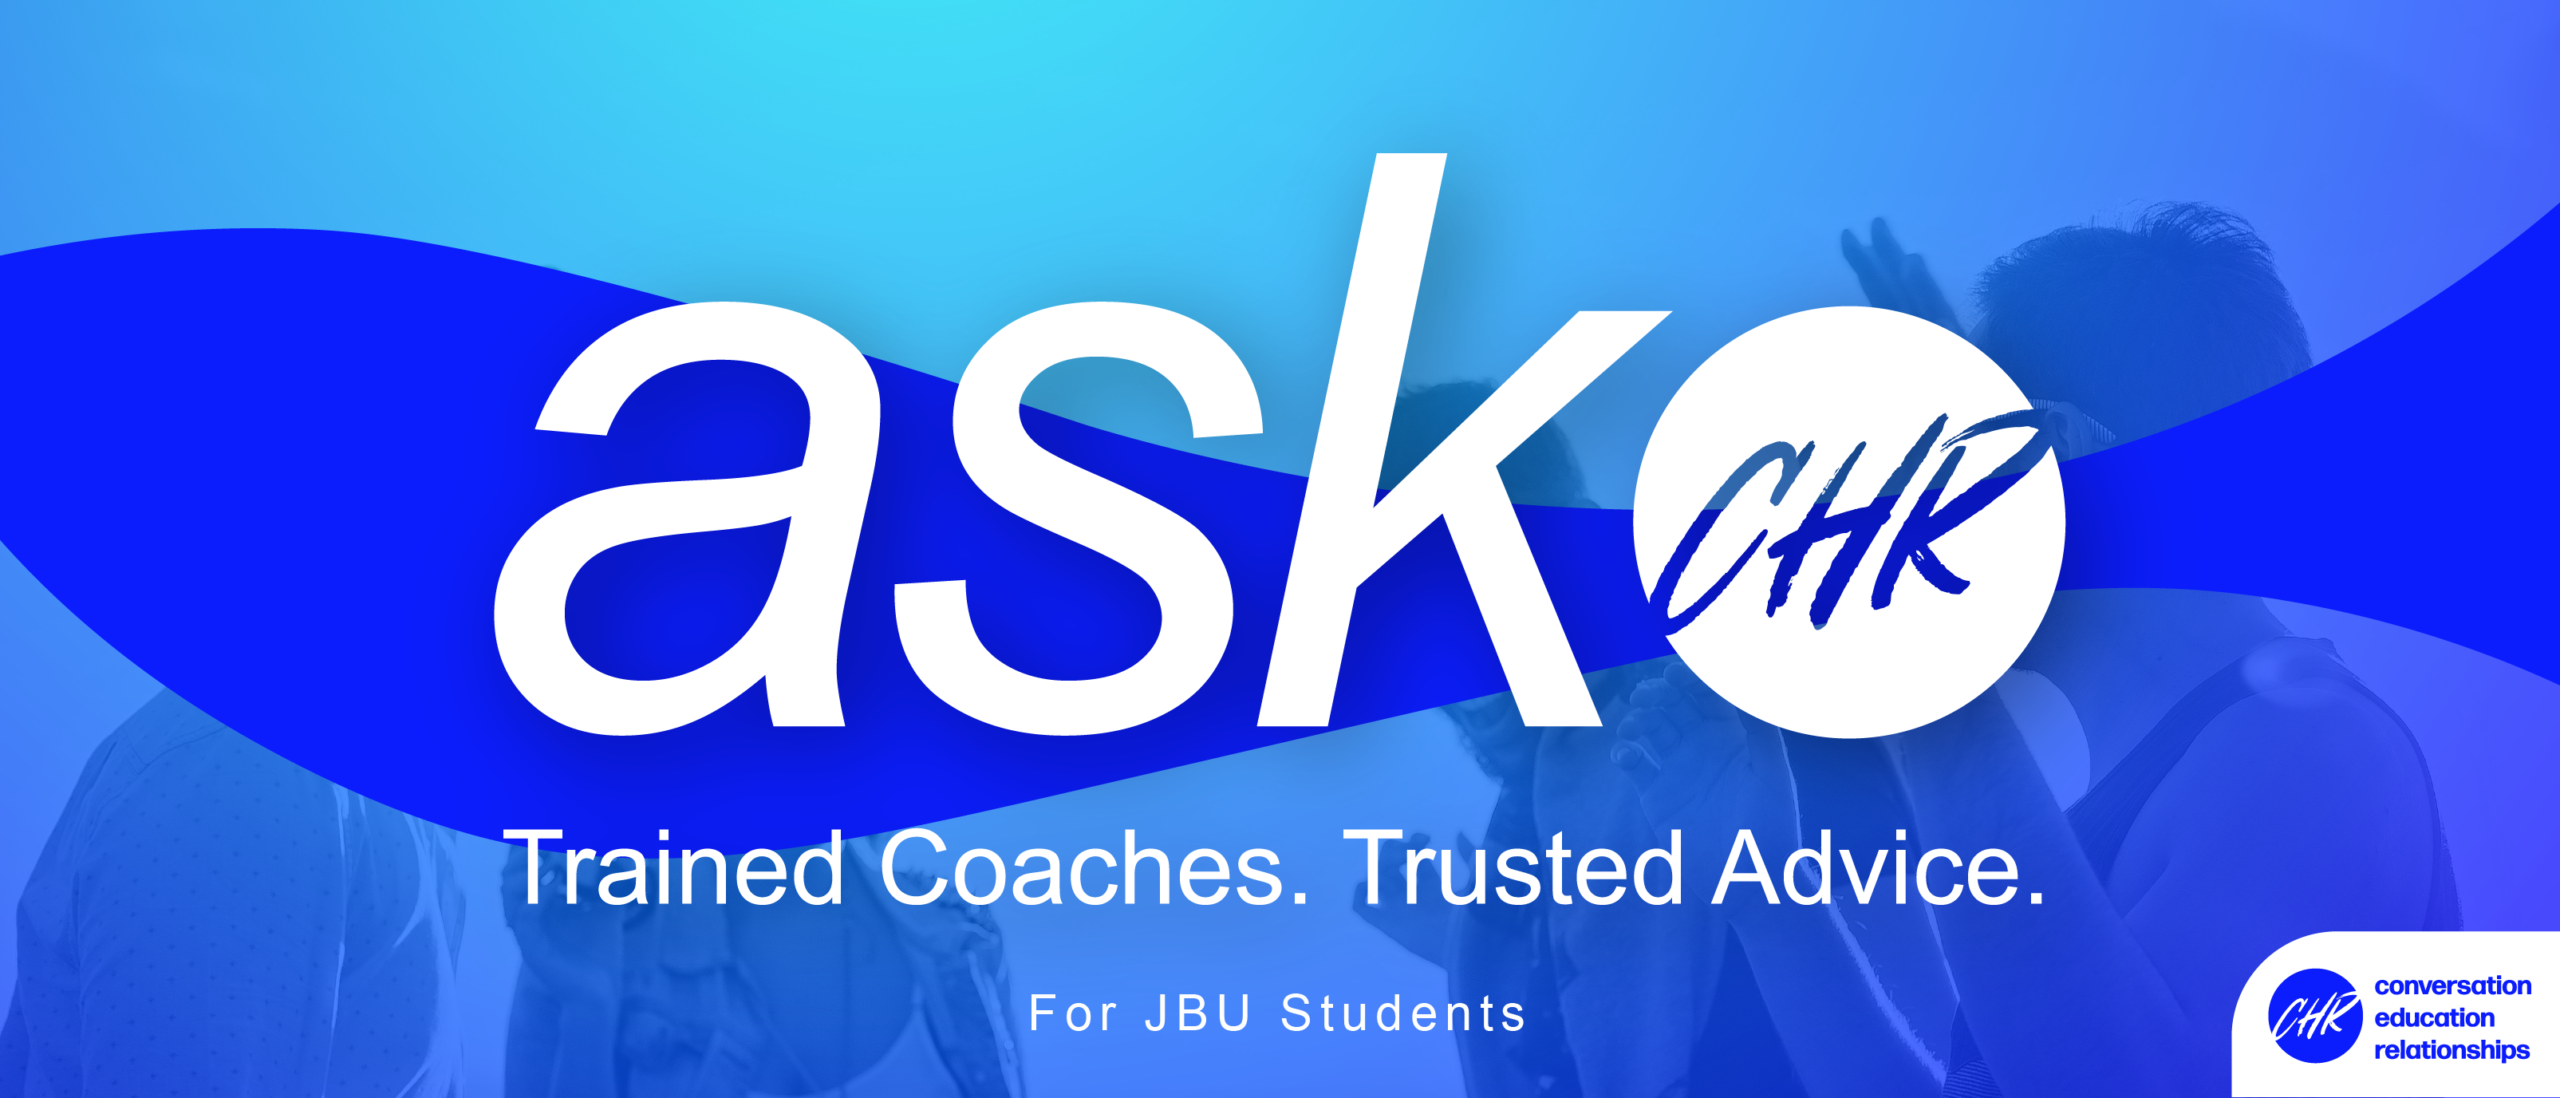 Ask CHR - Trained Coaches, Trusted Advice